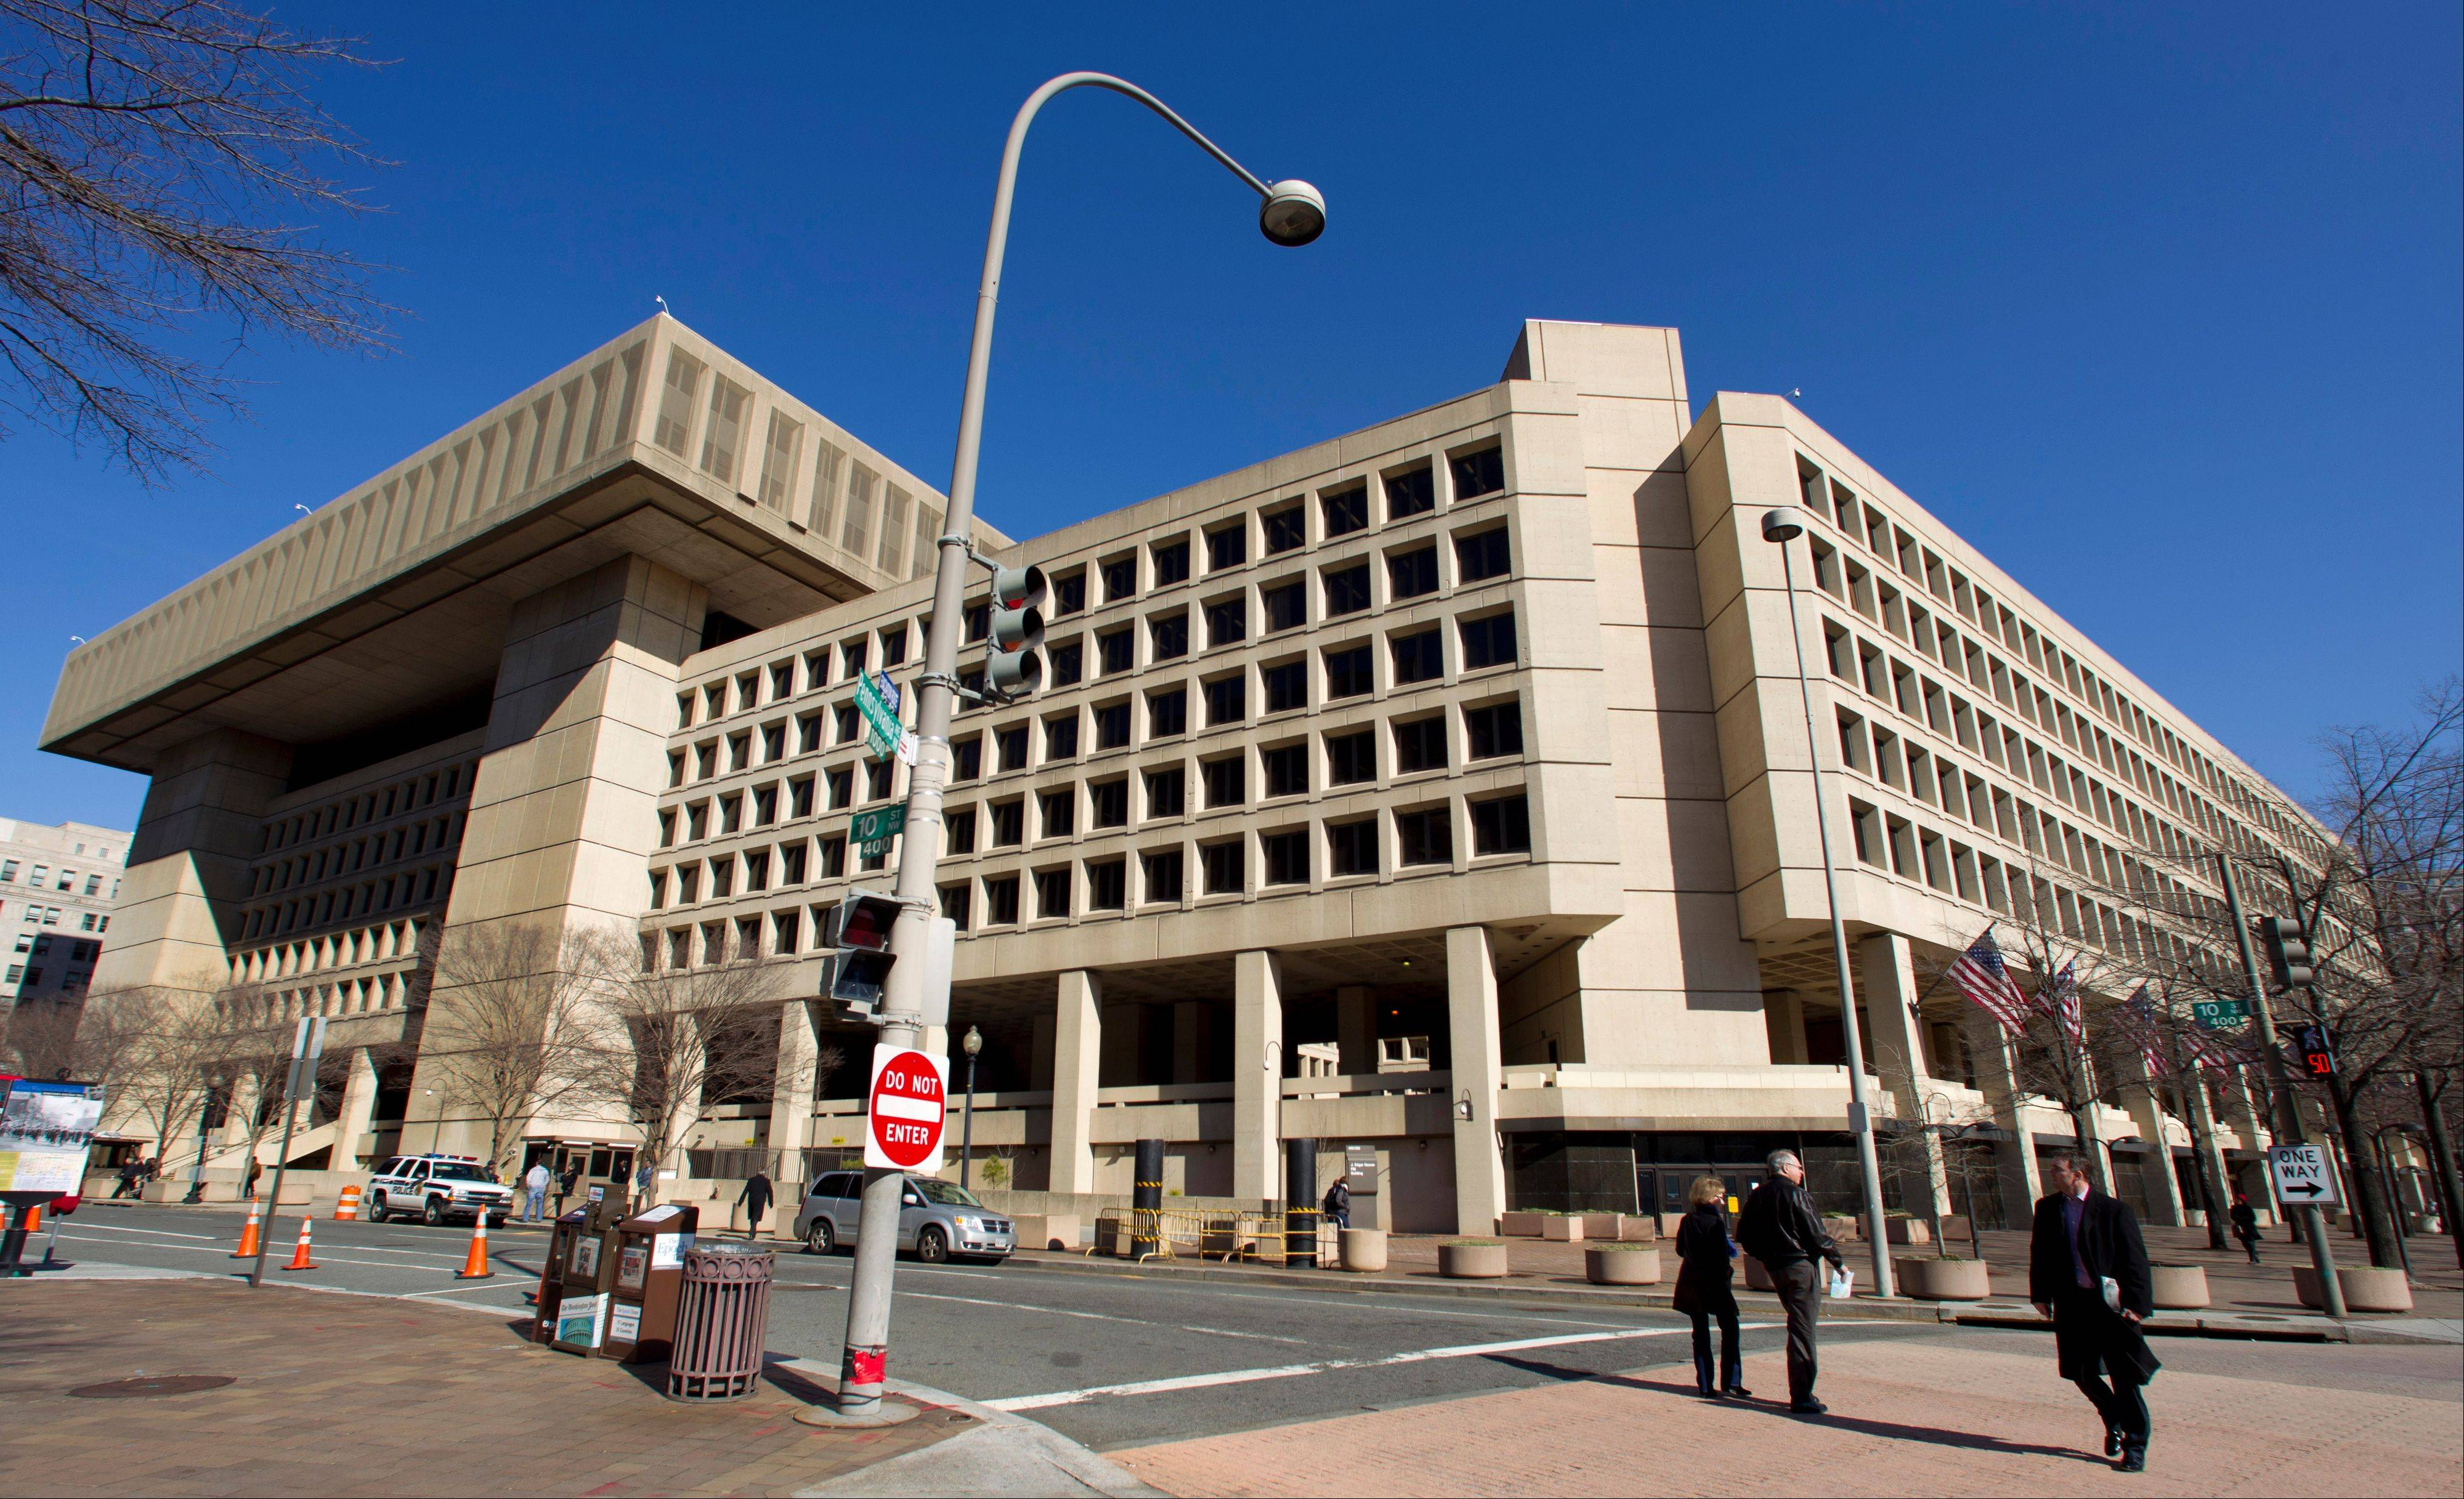 Associated Press The Federal Bureau of Investigation (FBI) headquarters in Washington. Just six blocks from the White House, the FBI's hulking headquarters overlooking Pennsylvania Avenue has long been the government building everyone loves to hate.